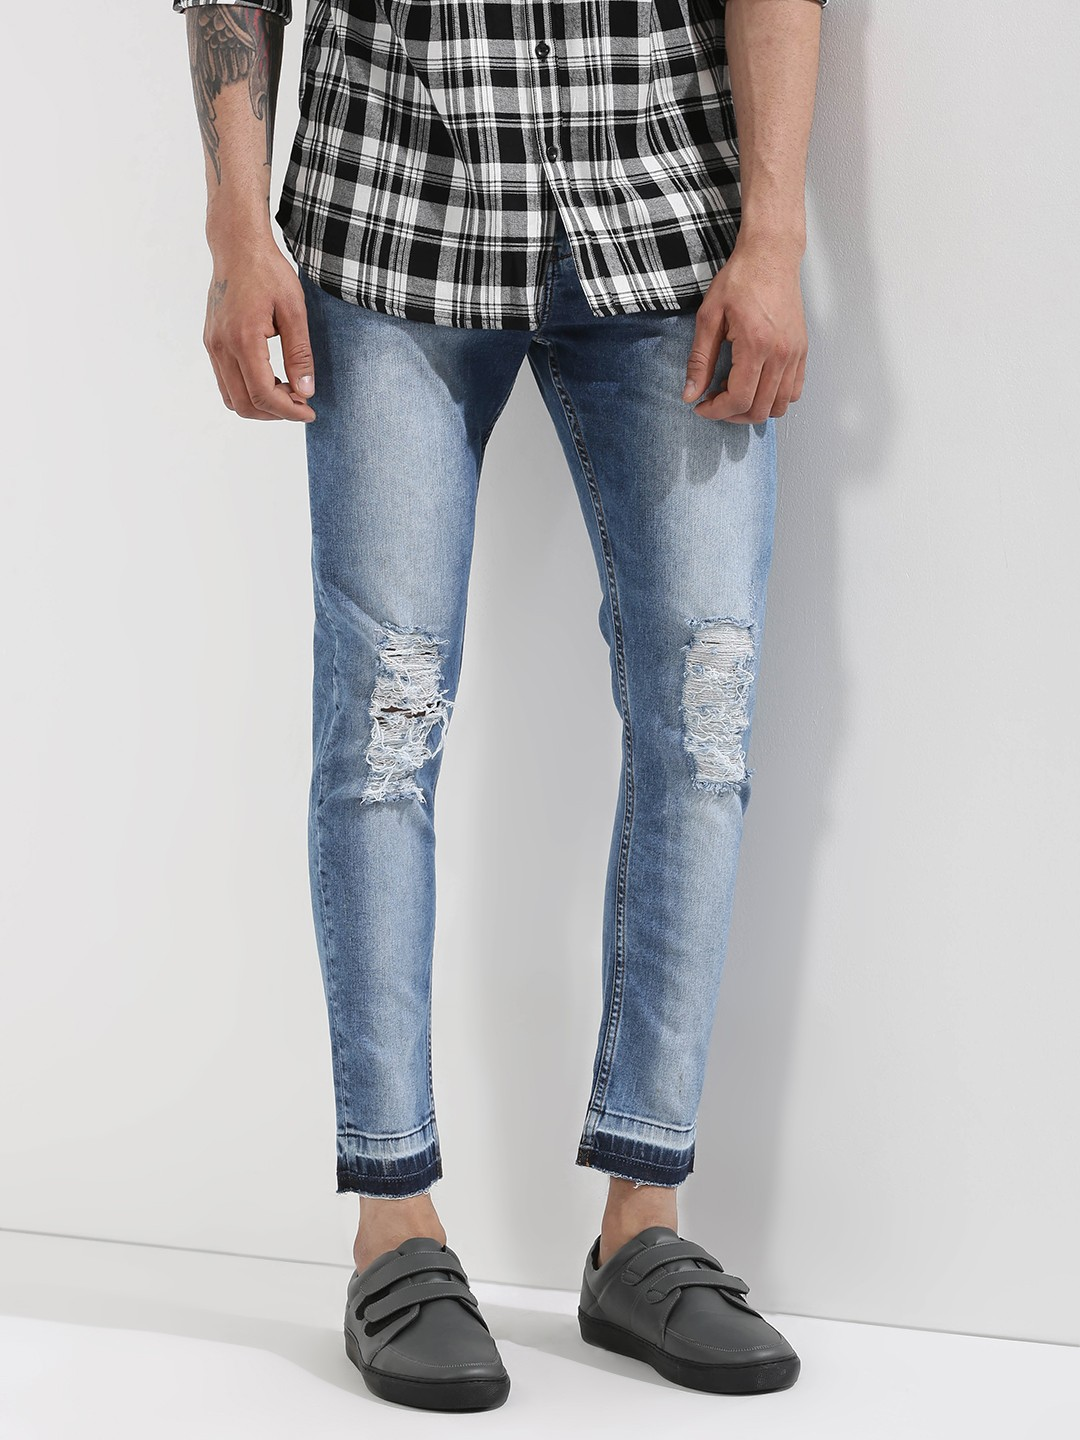 Buy Ripped Jeans Online and explore options galore Buying ripped jeans online is the best thing to do as it saves time as well as money. Online shopping sites such as hamlergoodchain.ga offers a .